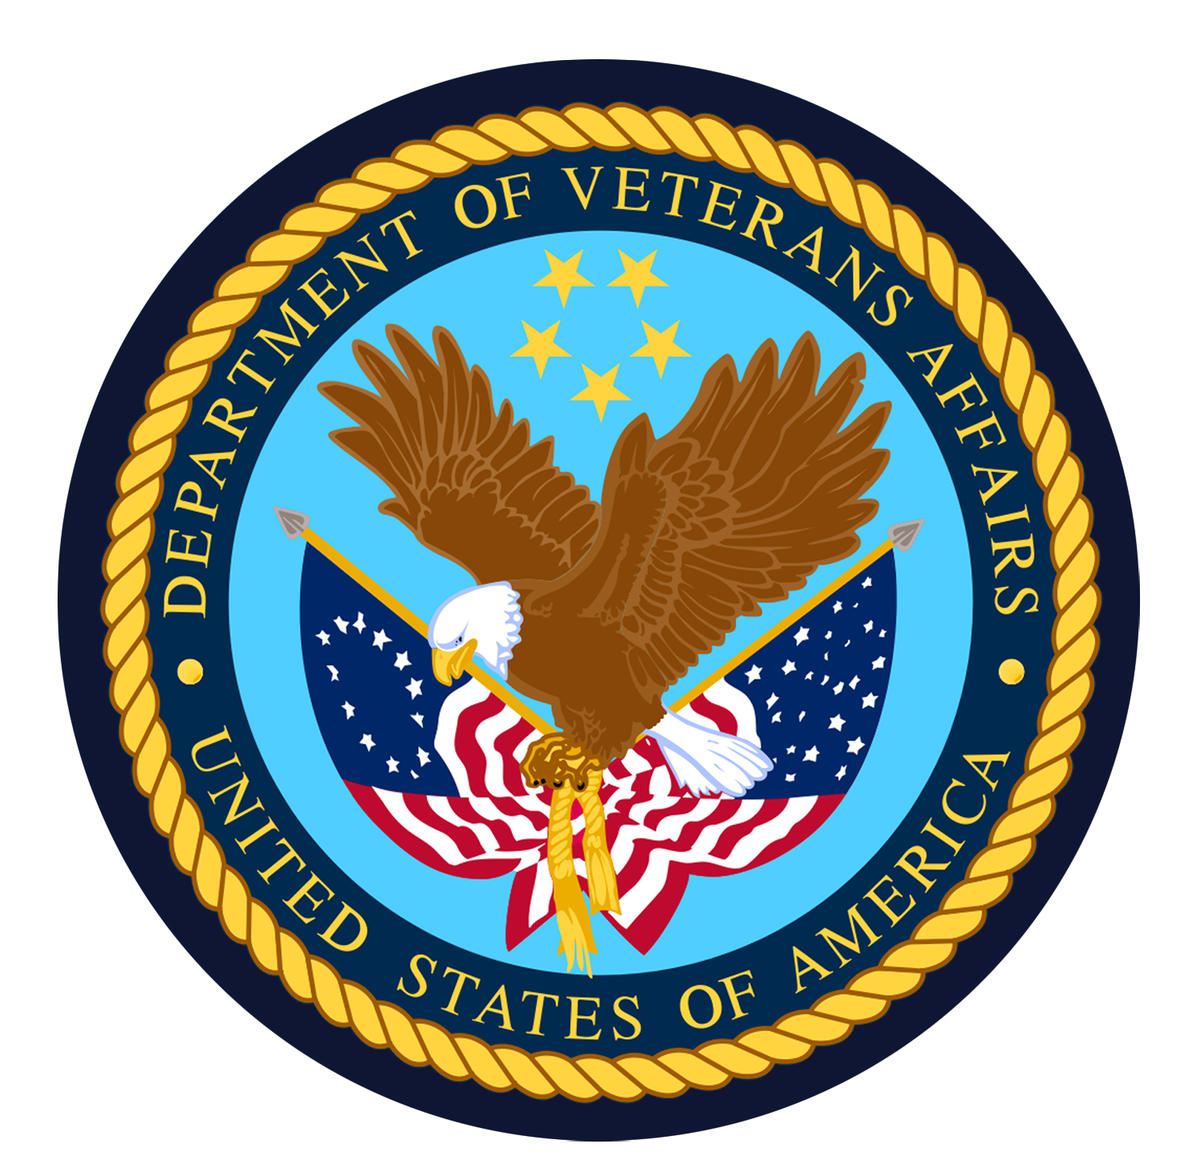 seal-of-the-united-states-department-of-veterans-affairs-golf-cart-tire-supply-01.png